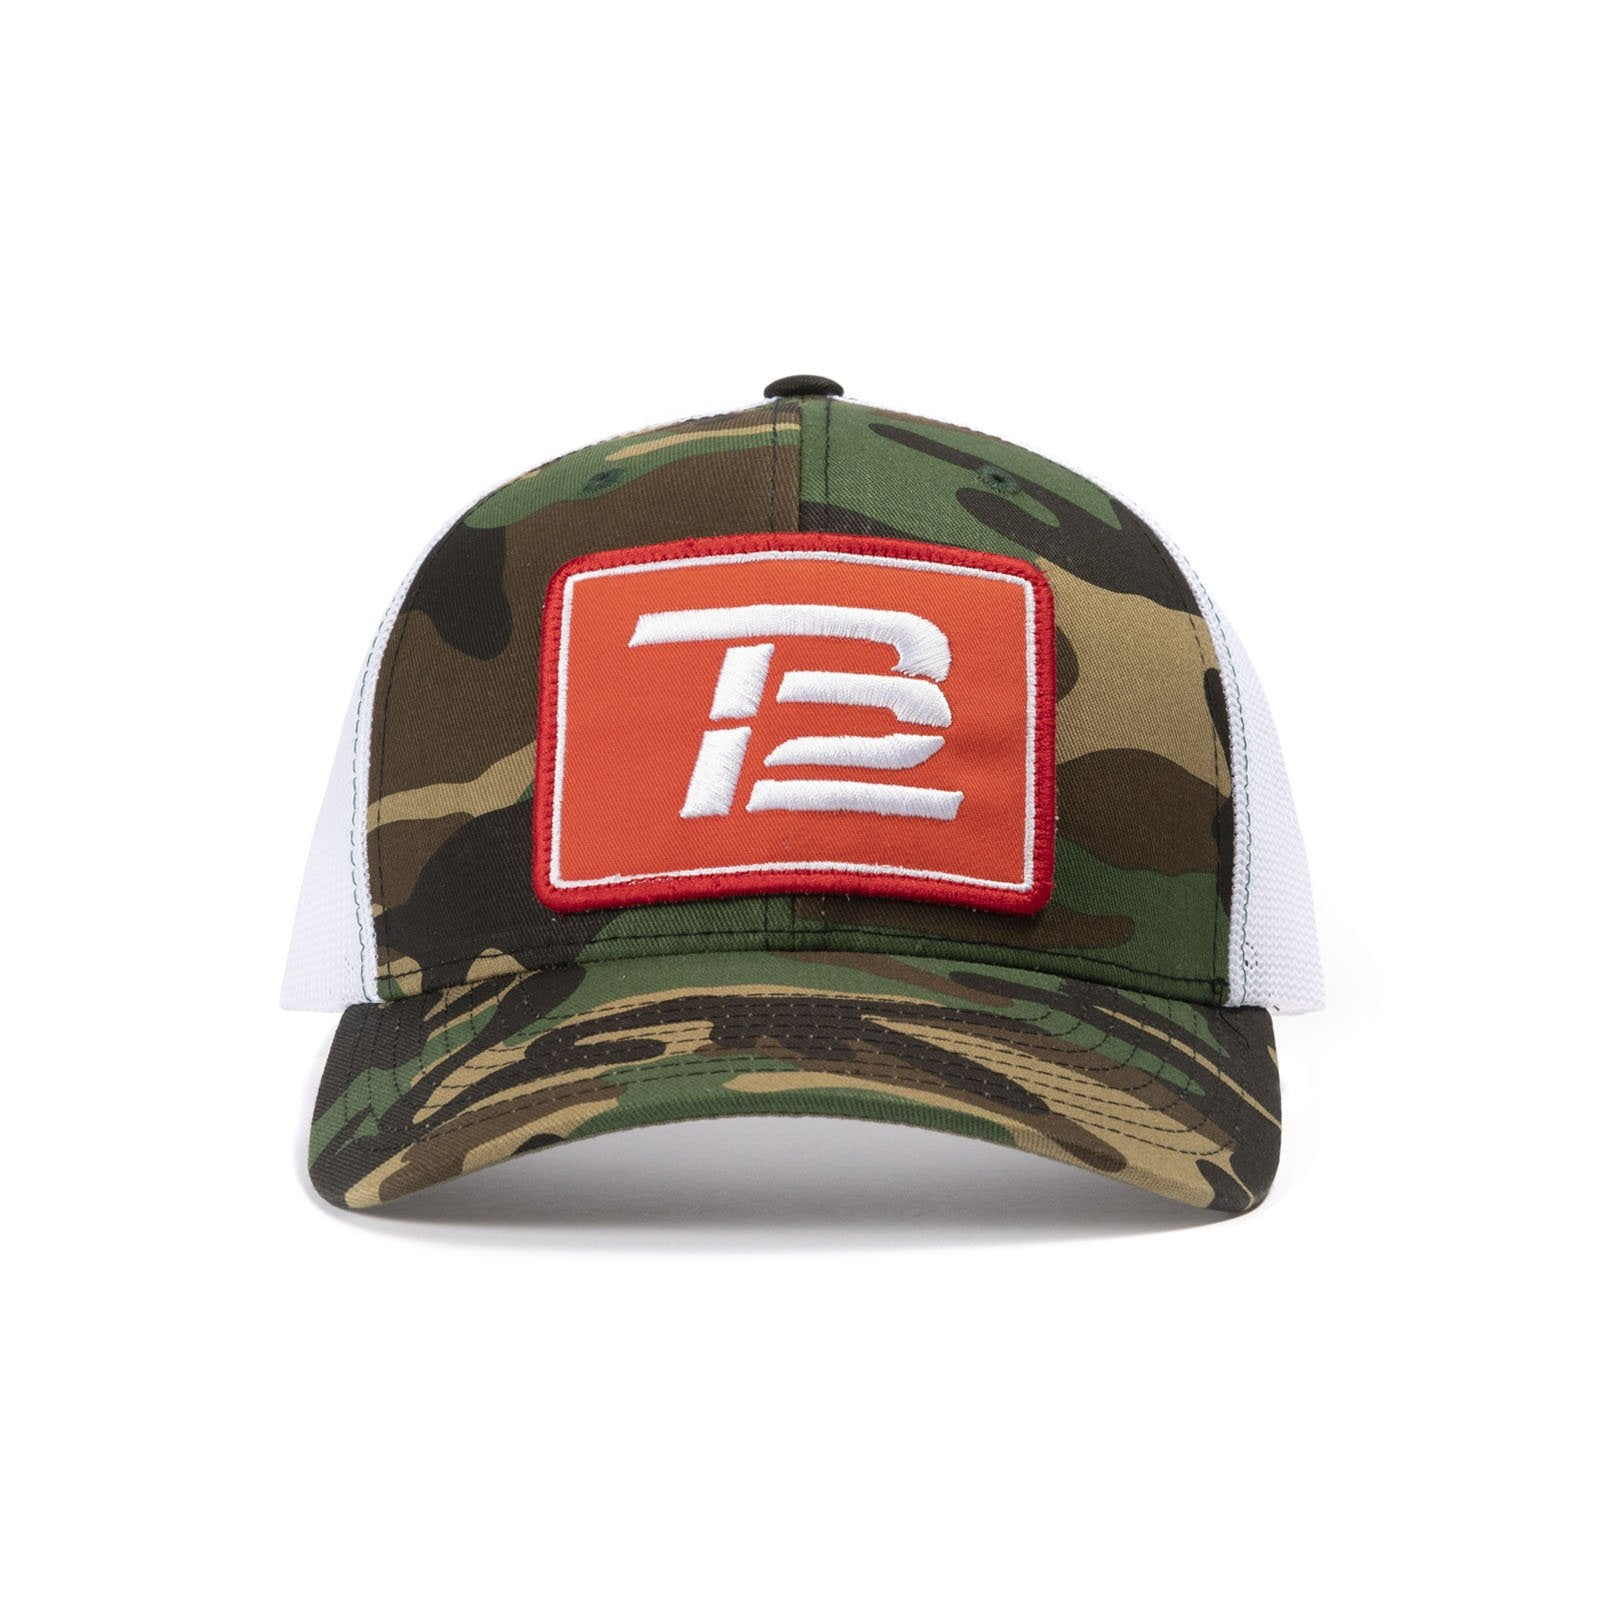 TB12 Special Edition Trucker Hat